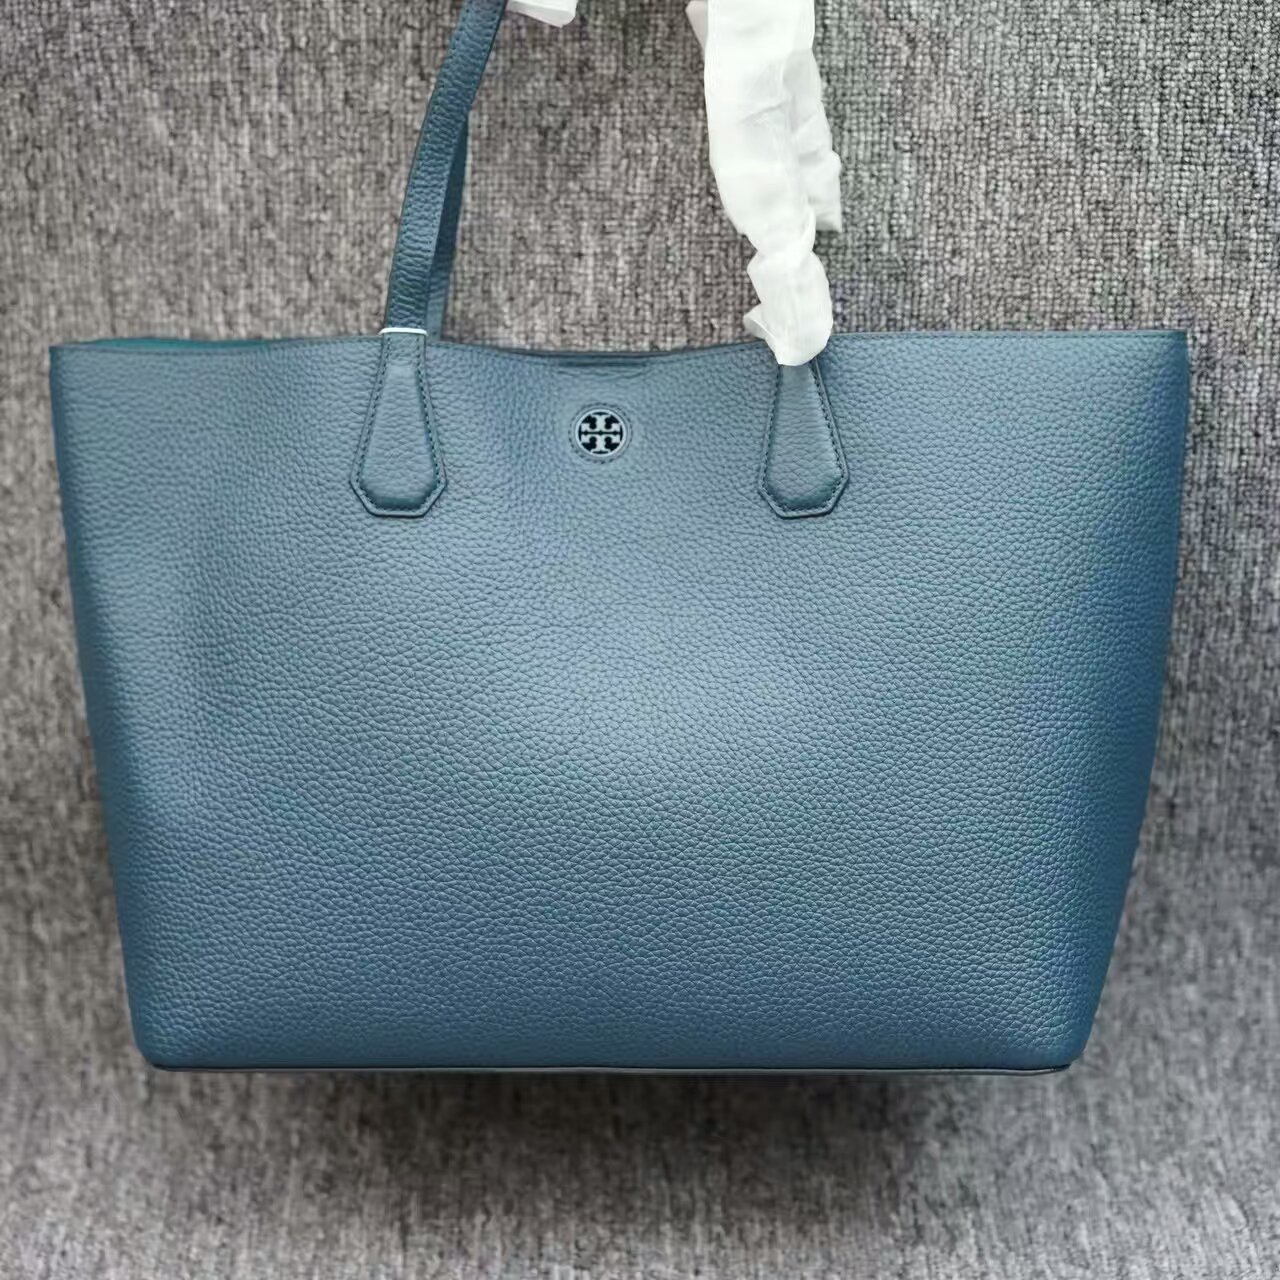 6883d6b6ada Authentic Tory Burch Perry Tote and 50 similar items.  Mmexport1481889833300. Mmexport1481889833300